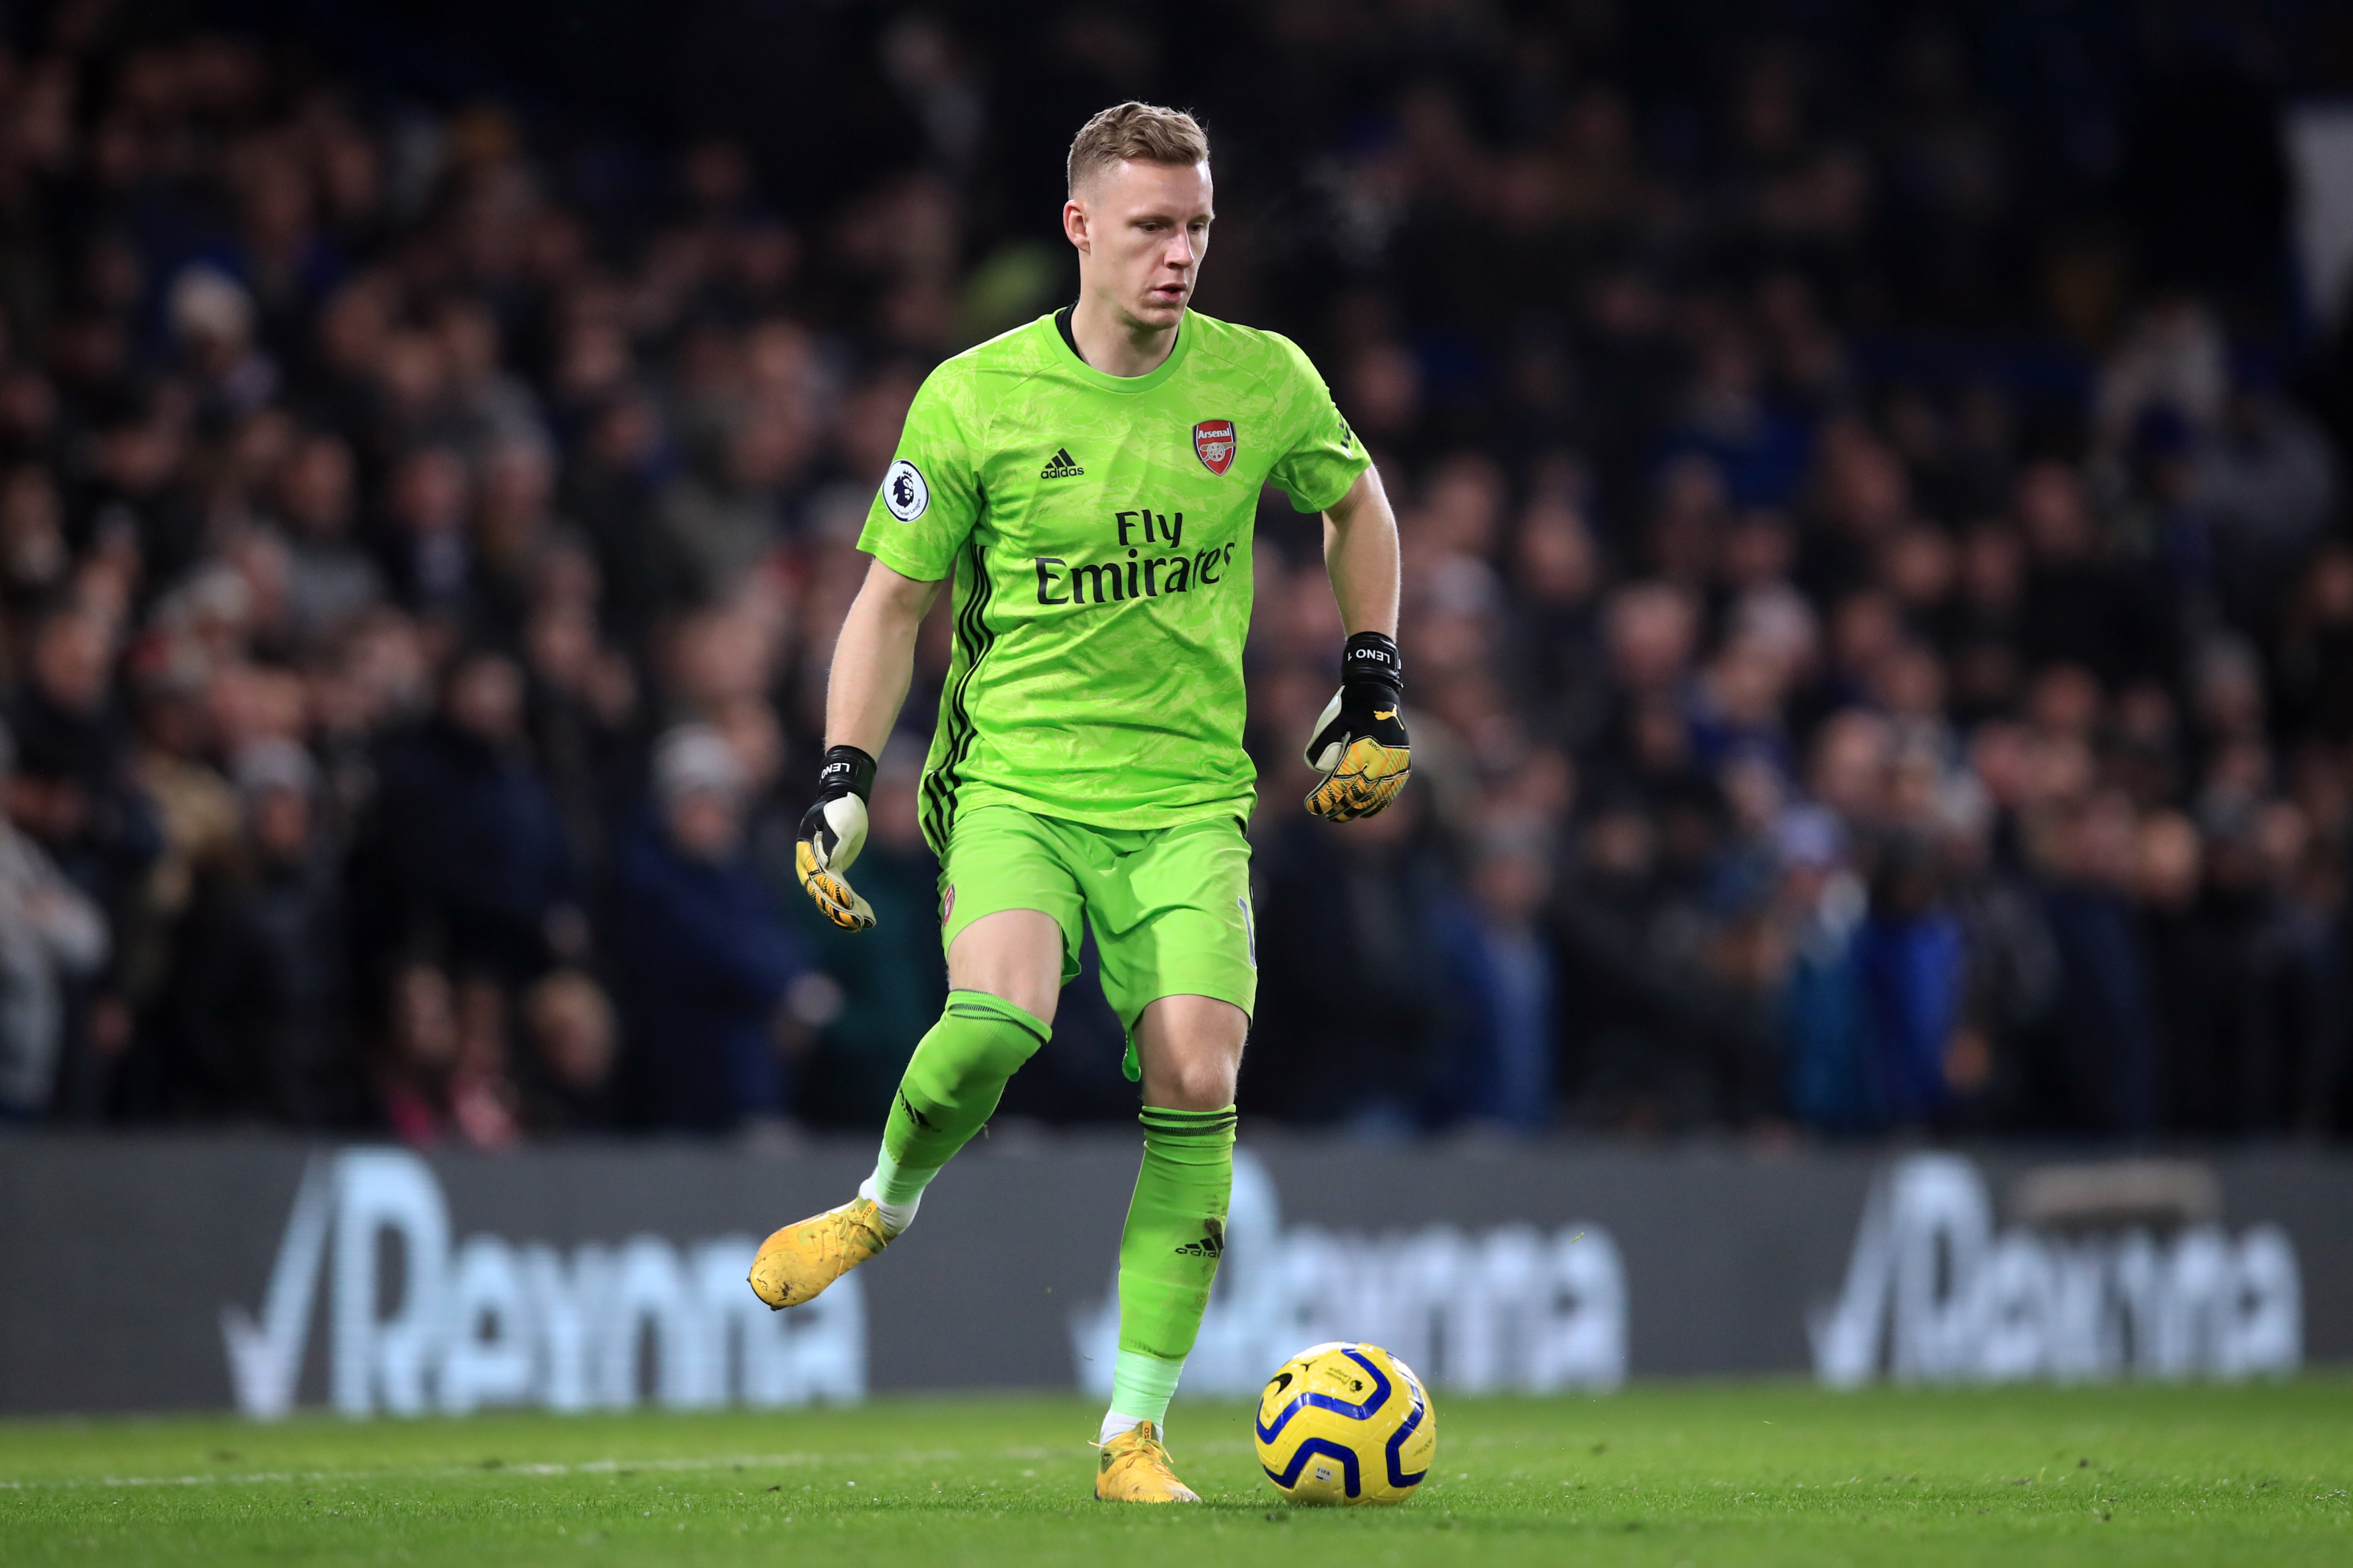 Arsenal: Bernd Leno has one skill to master before being elite